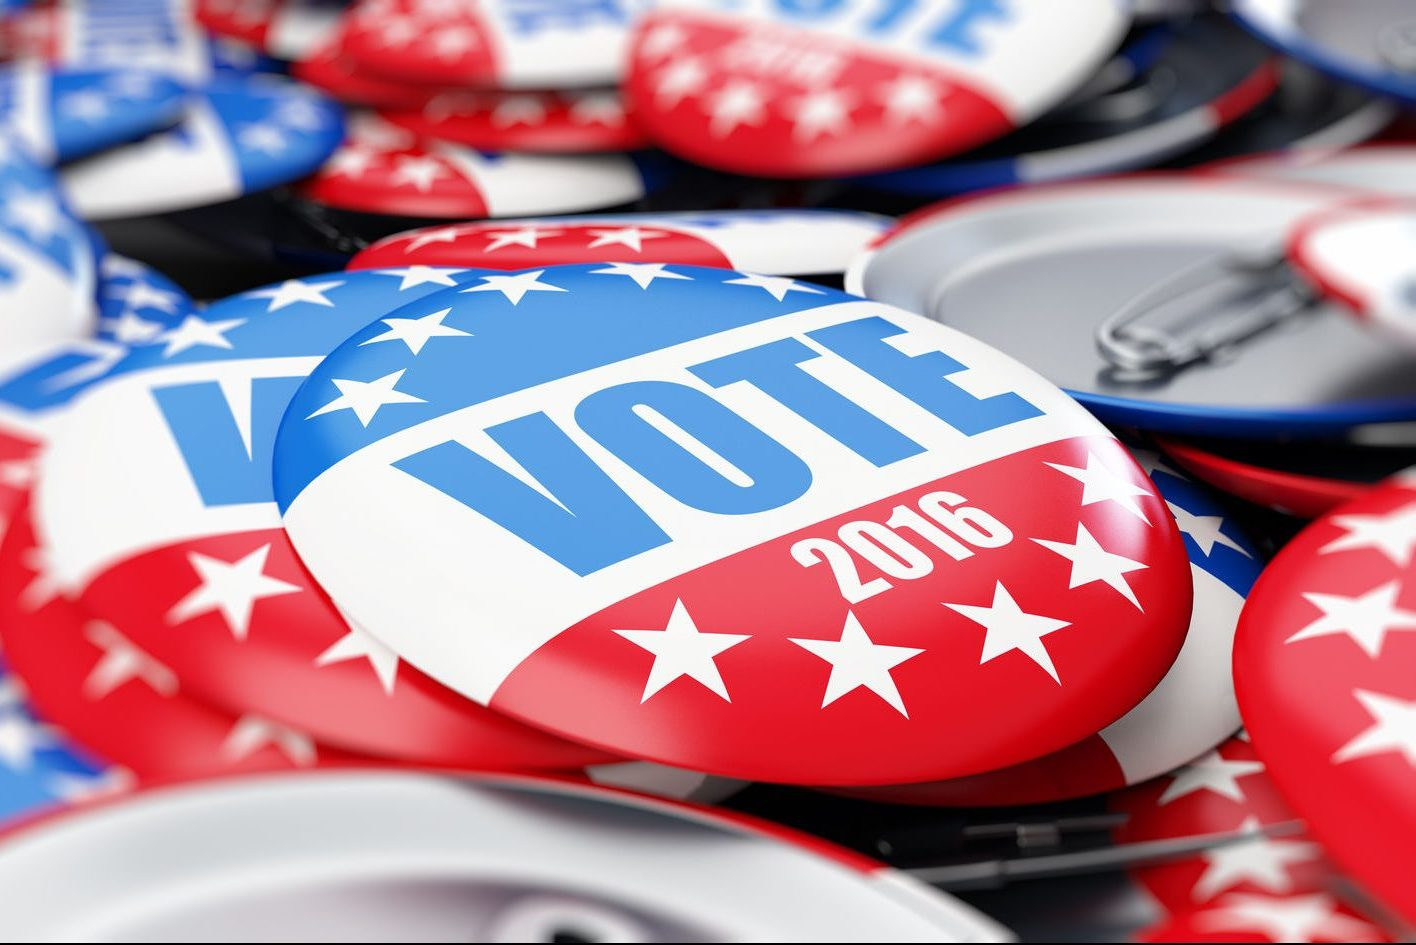 53801539 - vote election badge button for 2016 background